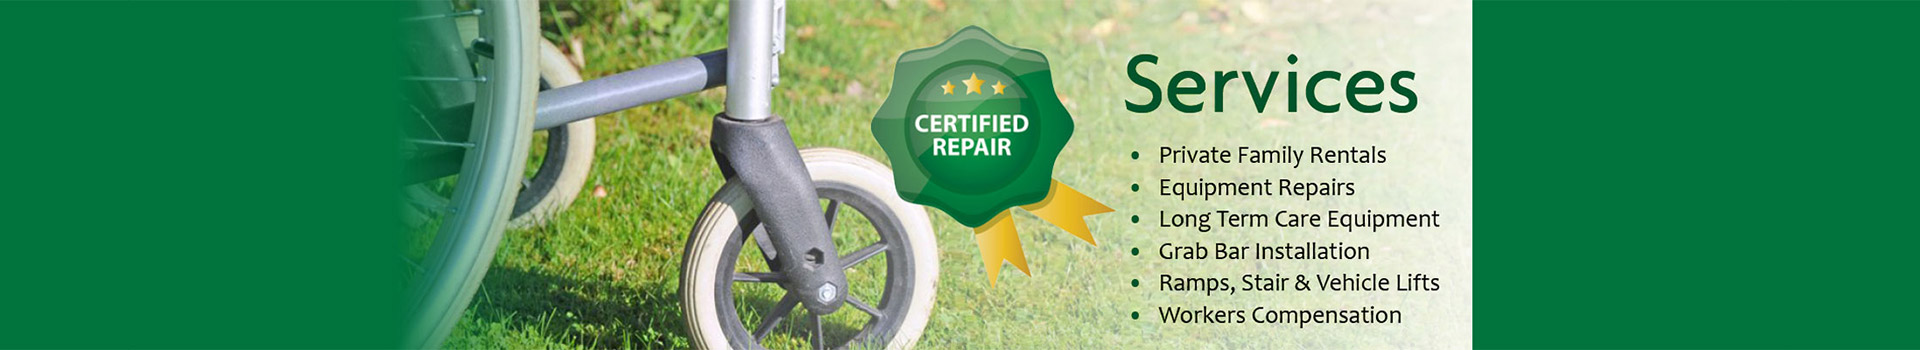 Certified-Repair-Services